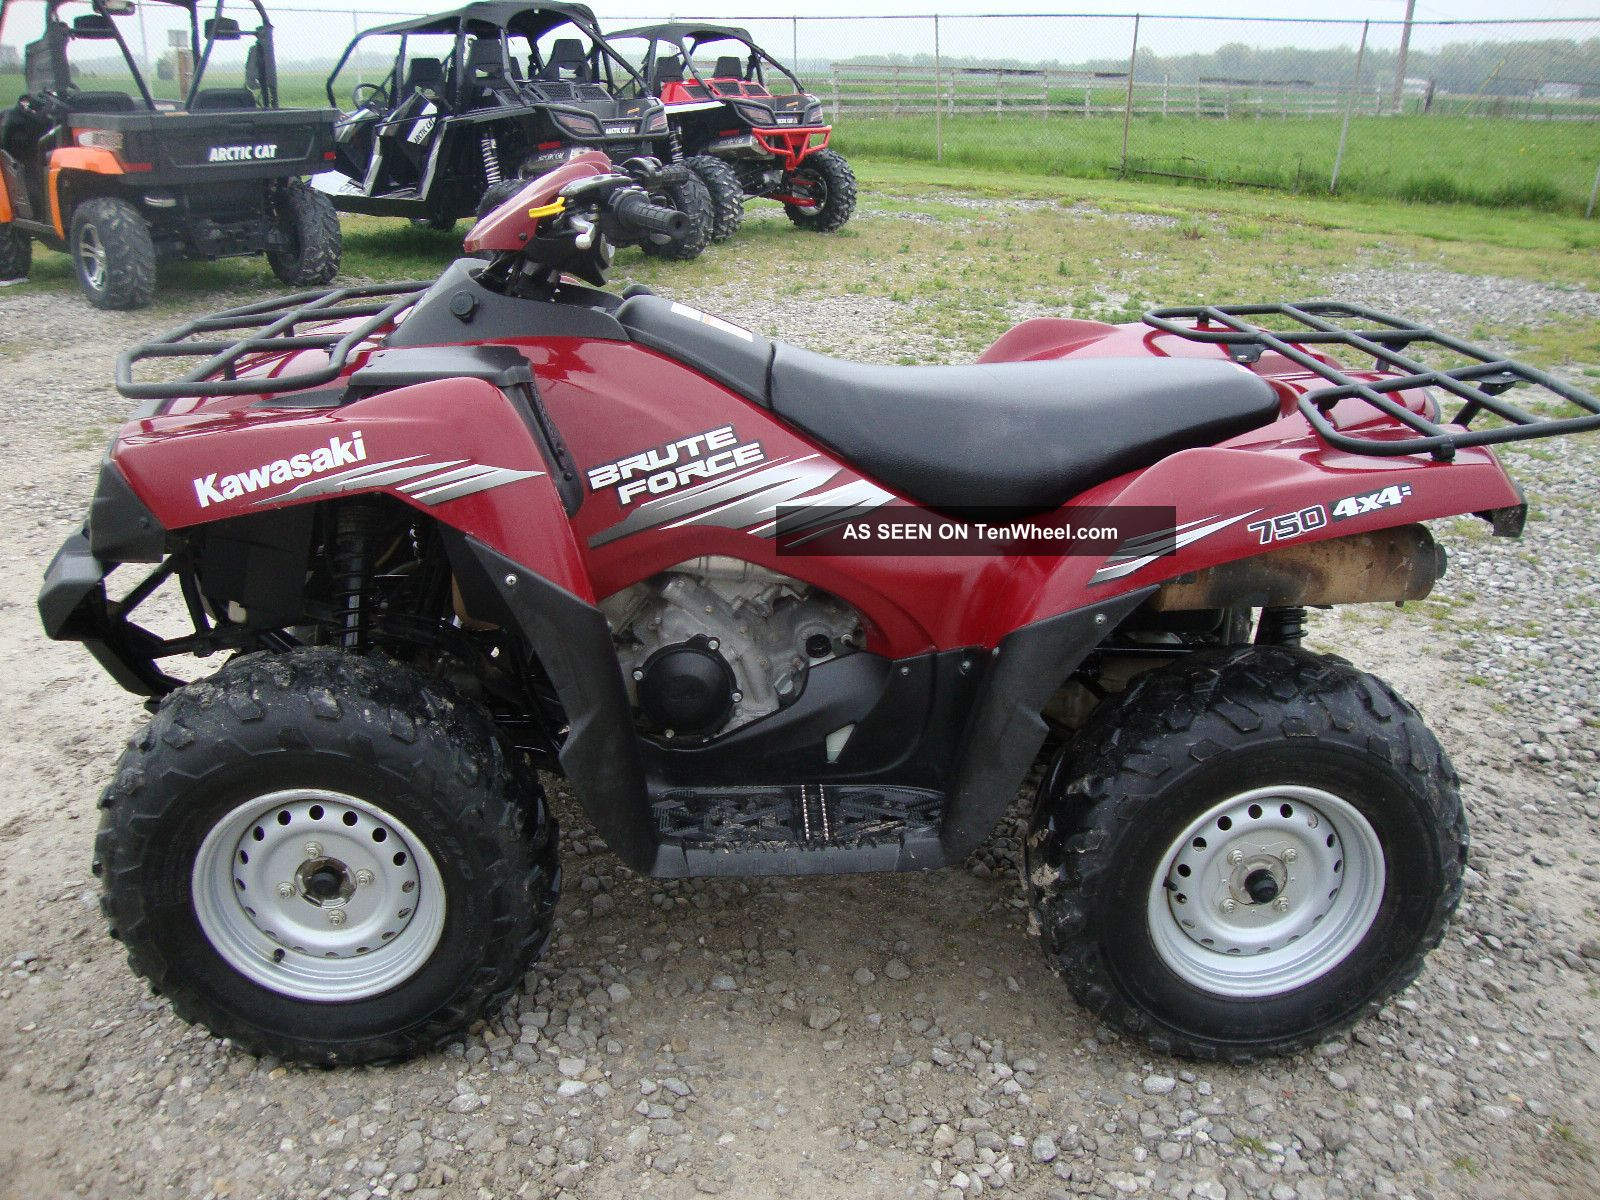 2011 kawasaki brute force 750 pictures to pin on pinterest pinsdaddy. Black Bedroom Furniture Sets. Home Design Ideas